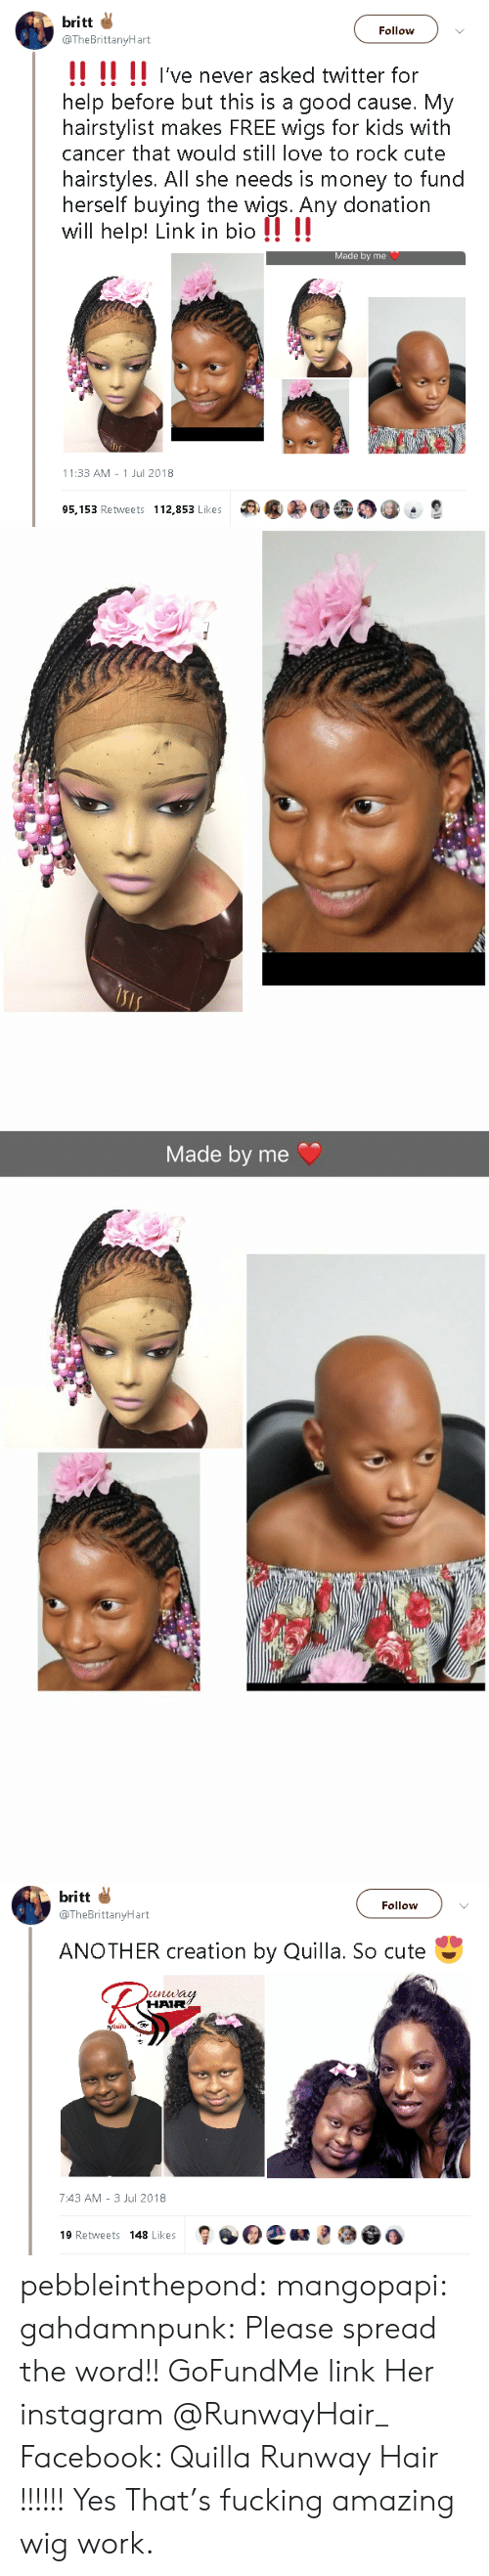 Fund: britt  Follow  @TheBrittanyHart  !! !! !! I've never asked twitter for  help before but this is a good cause. My  hairstylist makes FREE wigs for kids with  cancer that would still love to rock cute  hairstyles. All she needs is money to fund  herself buying the wigs. Any donation  will help! Link in bio !! !!  Made by me  11:33 AM 1 Jul 2018  95,153 Retweets 112,853 Likes   Made by me   britt  Follow  @TheBrittanyHart  ANOTHER creation by Quilla. So cute  unway  HAIR  7:43 AM 3 Jul 2018  19 Retweets 148 Likes pebbleinthepond: mangopapi:  gahdamnpunk:  Please spread the word!! GoFundMe link Her instagram  @RunwayHair_   Facebook: Quilla Runway Hair     !!!!!! Yes    That's fucking amazing wig work.